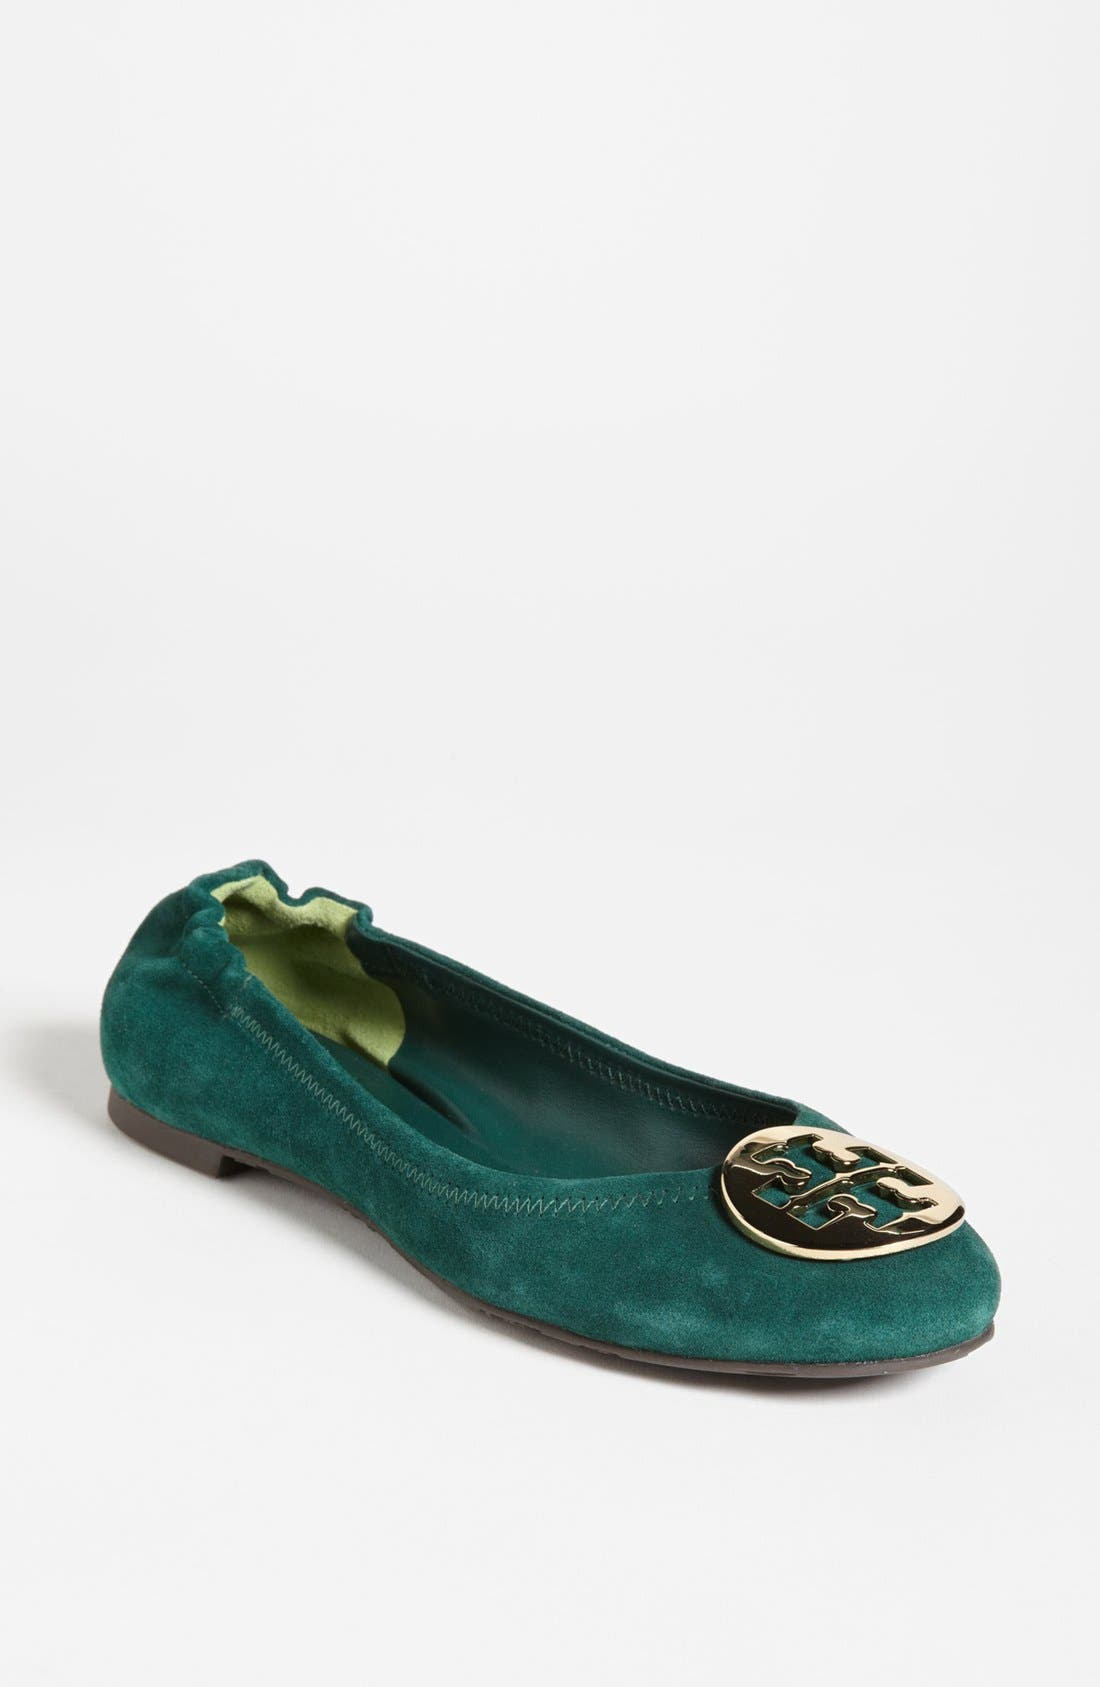 Alternate Image 1 Selected - Tory Burch 'Reva' Skimmer Flat